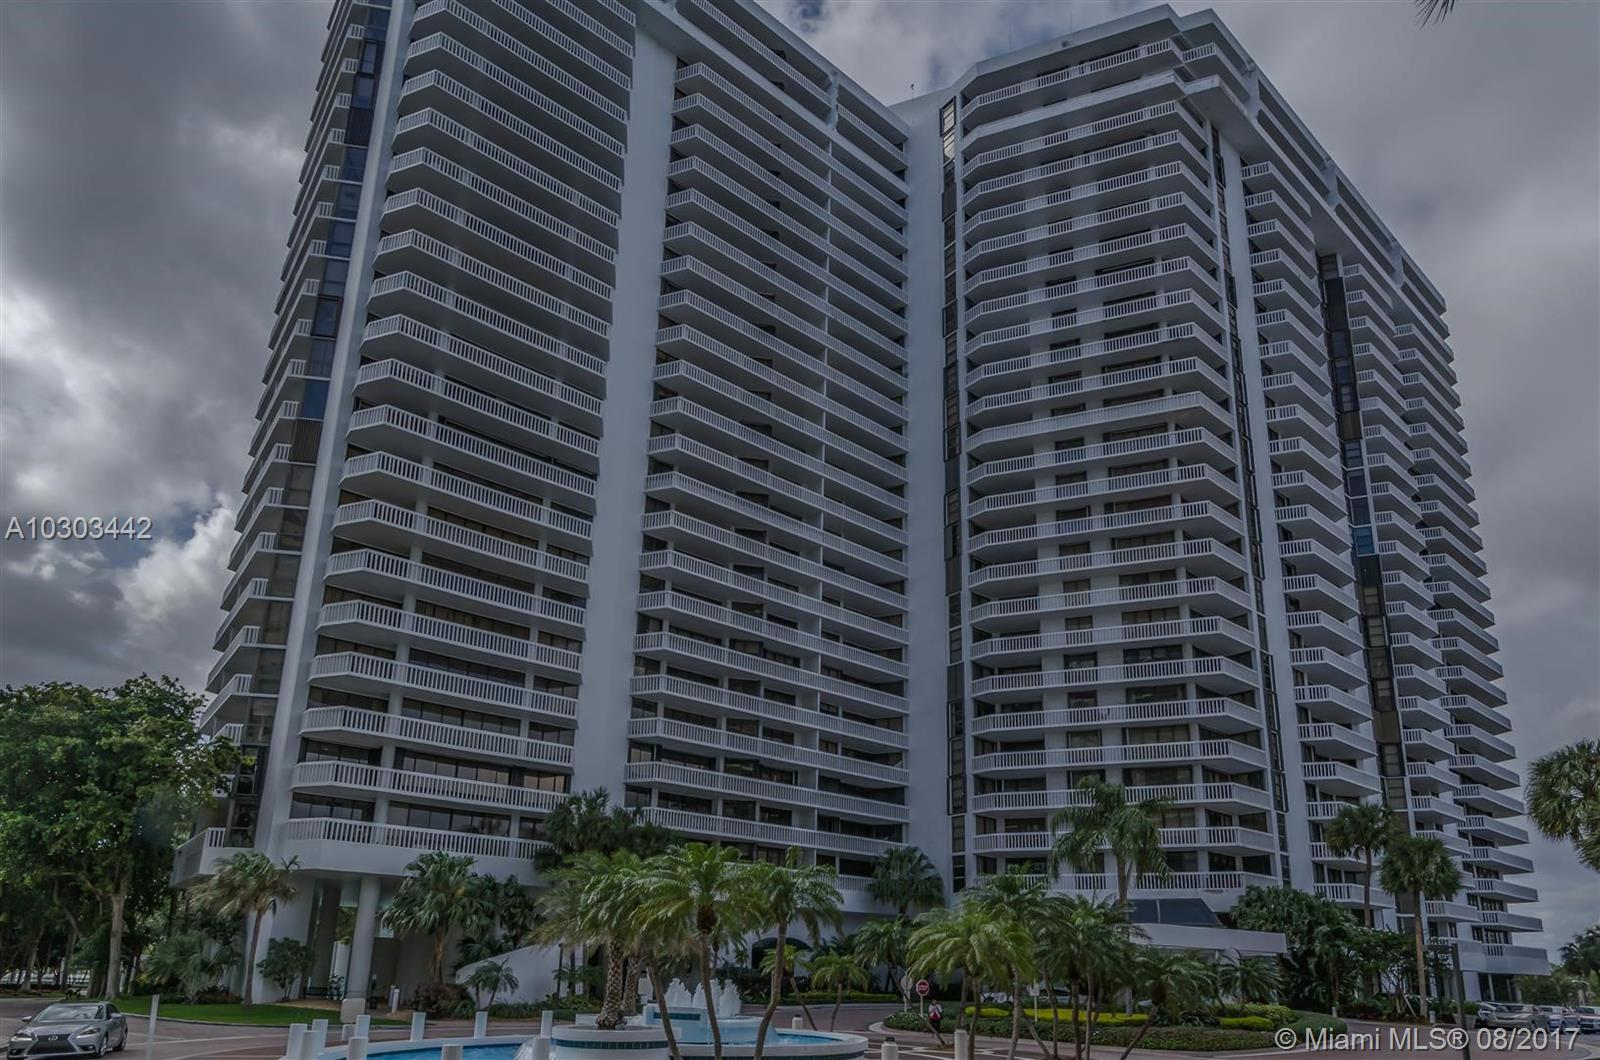 20281 E Country Club Dr #2414, Aventura FL, 33180